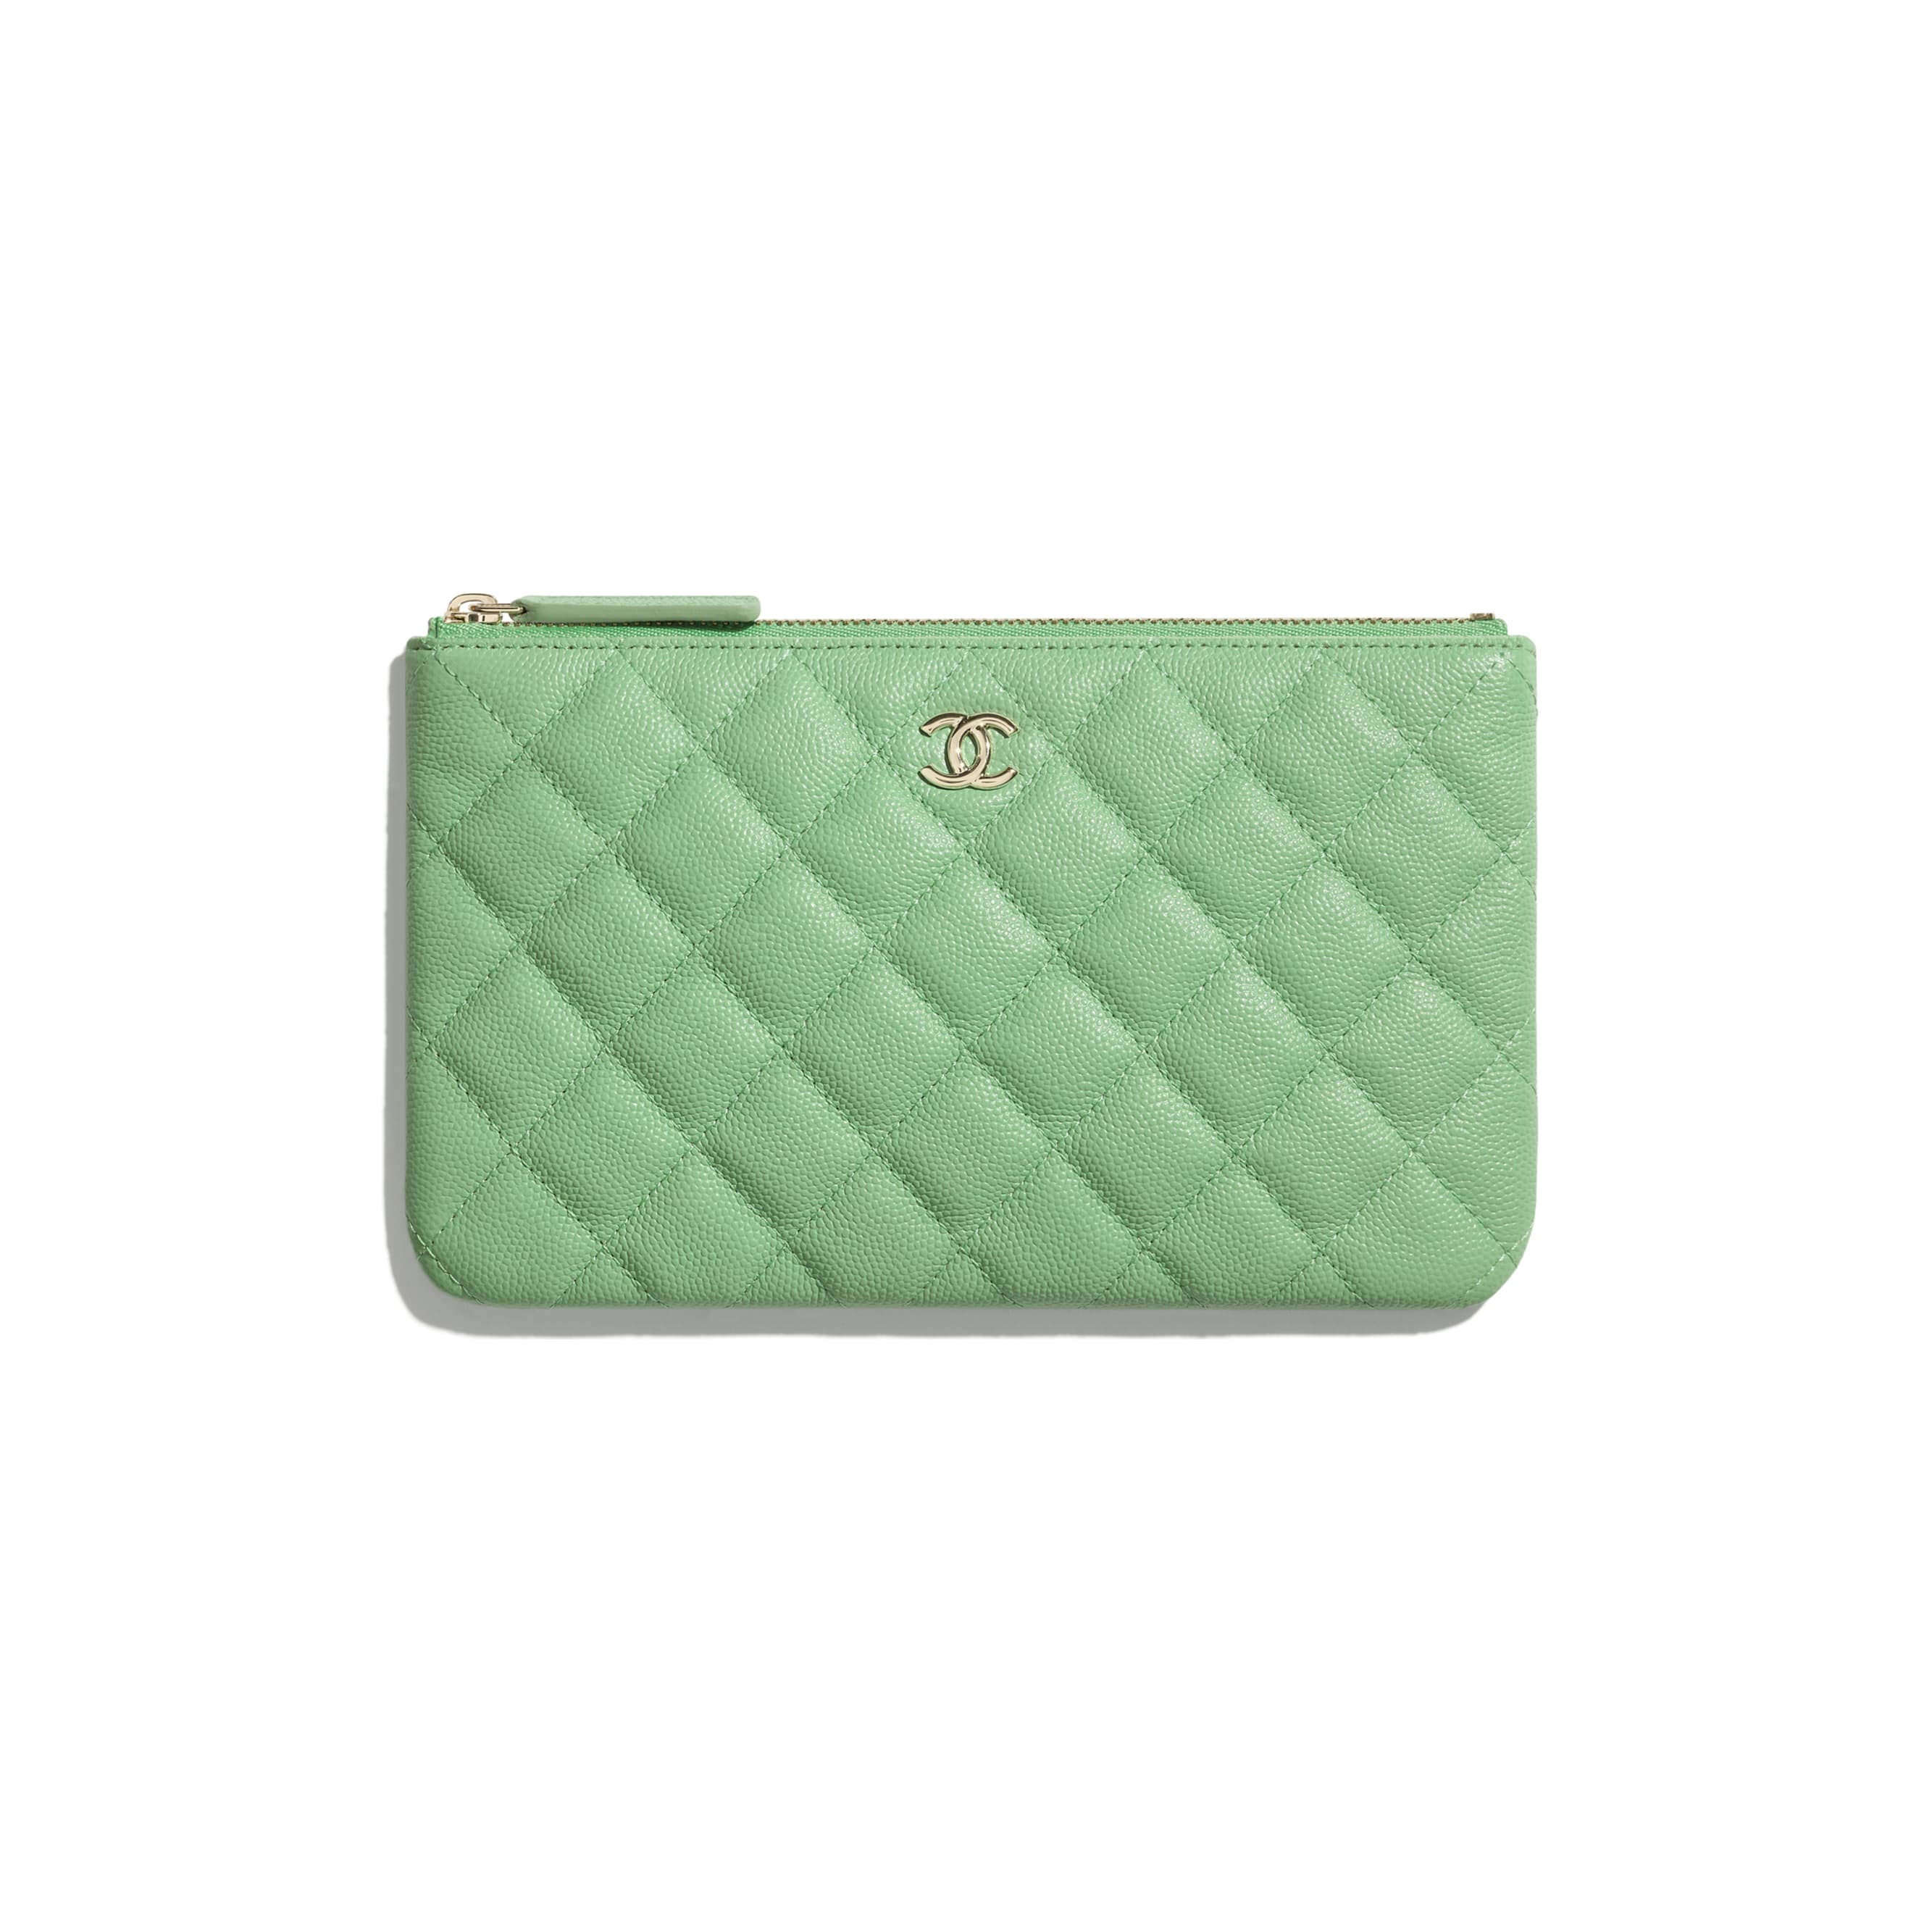 Classic Small Pouch - Green - Grained Calfskin & Gold-Tone Metal - CHANEL - Default view - see standard sized version